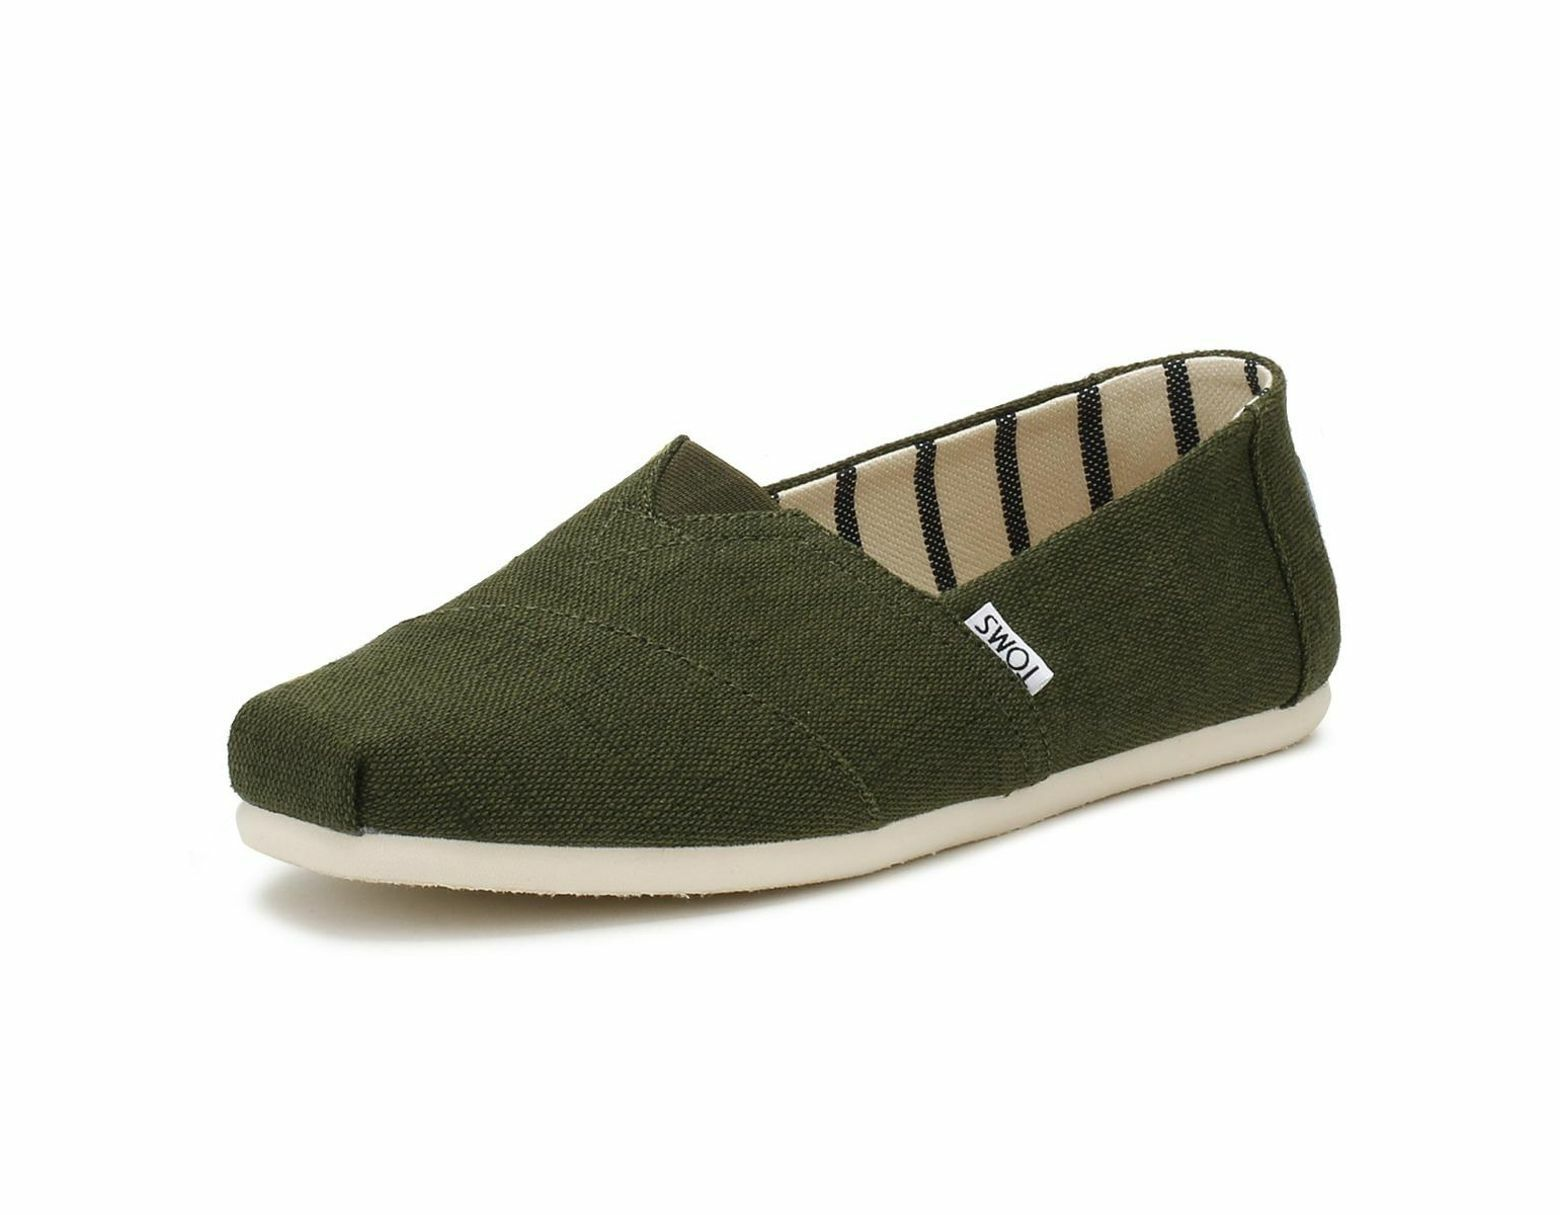 Toms Women's Venice Collection New for 2019 Pine Green